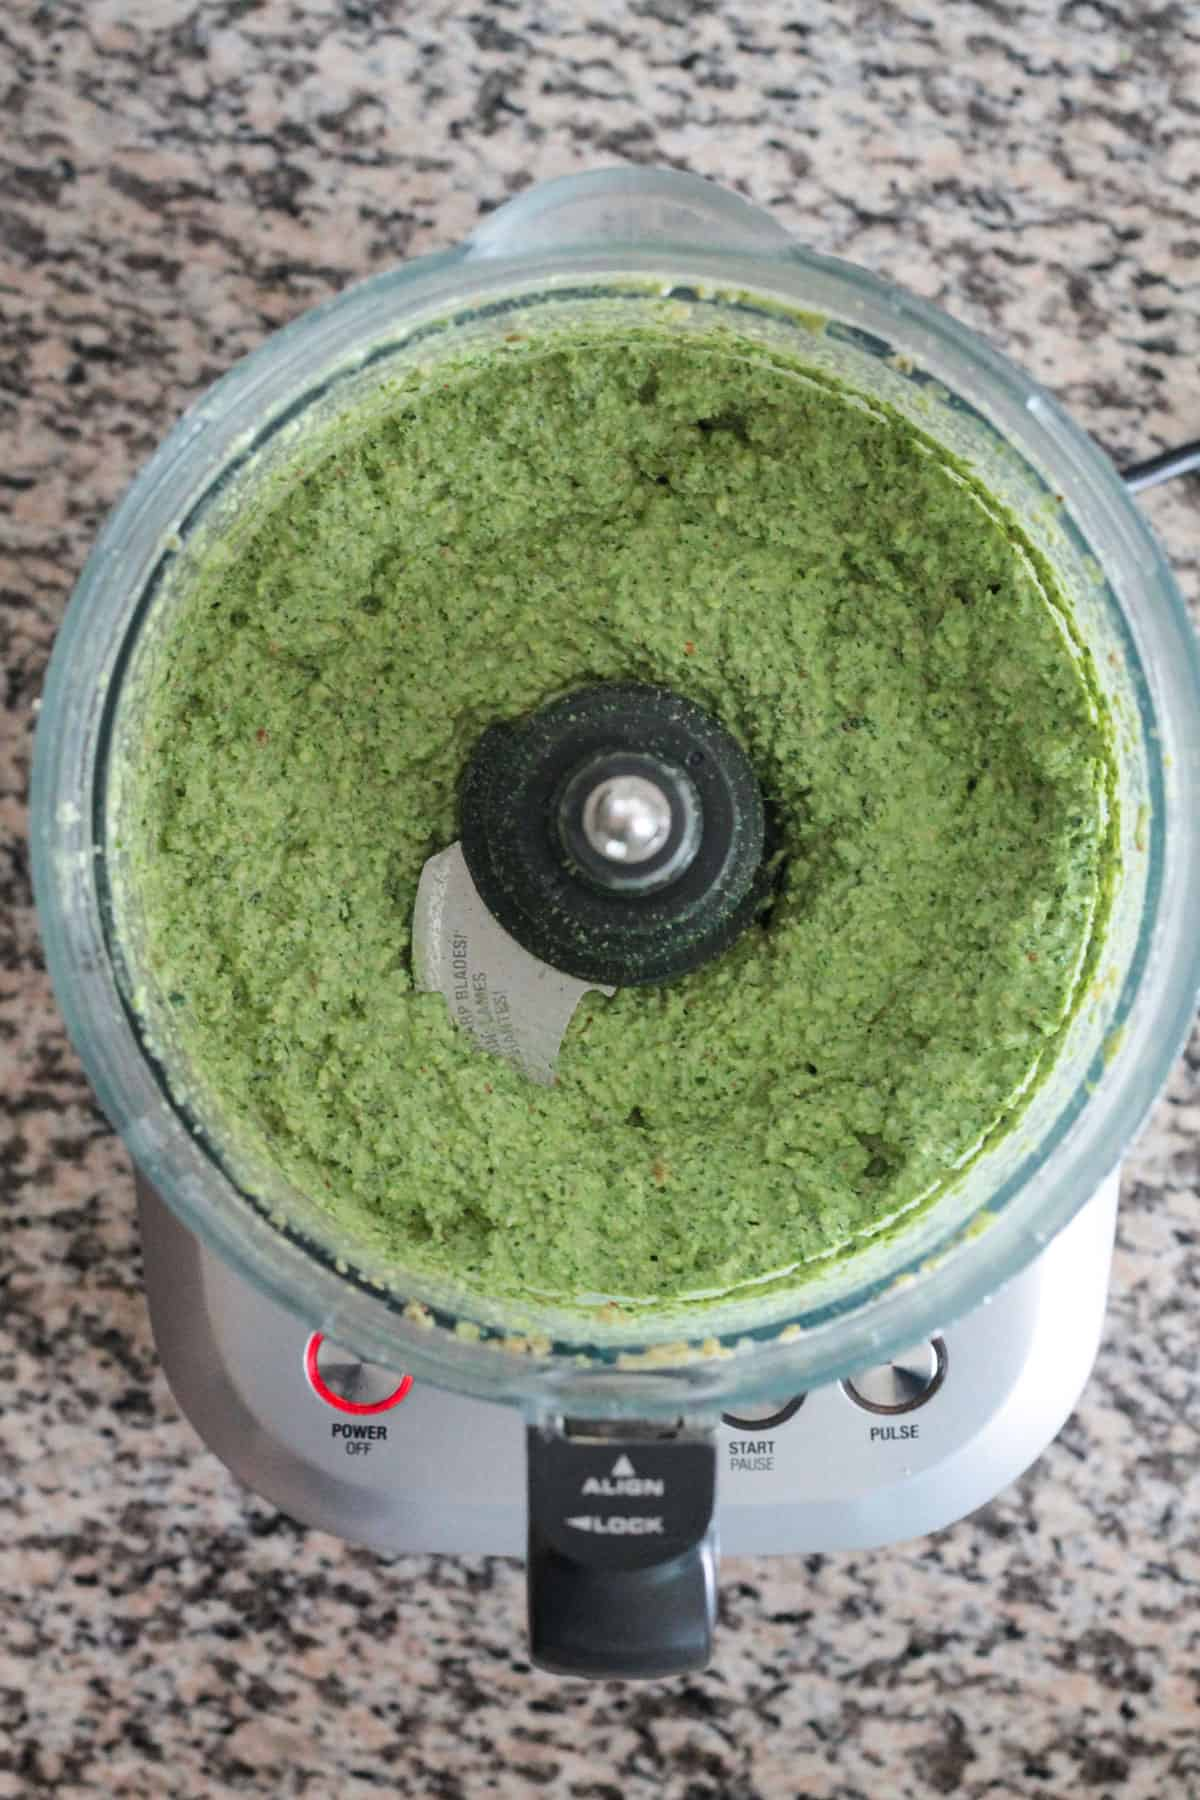 Ingredients pulsed into a sauce in the food processor.